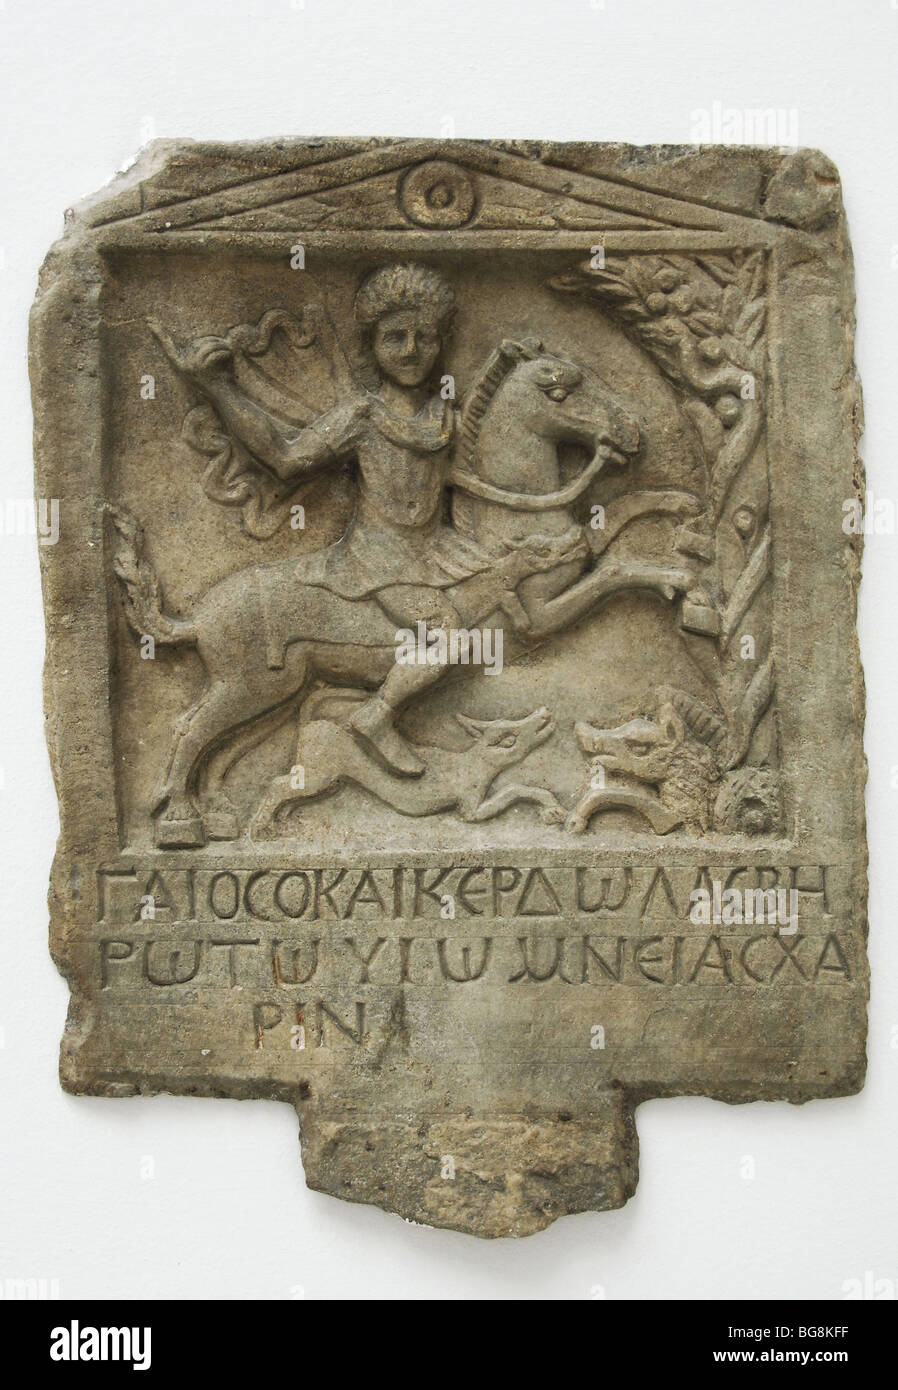 Marble funerary relief depicting a thracian horseman. - Stock Image